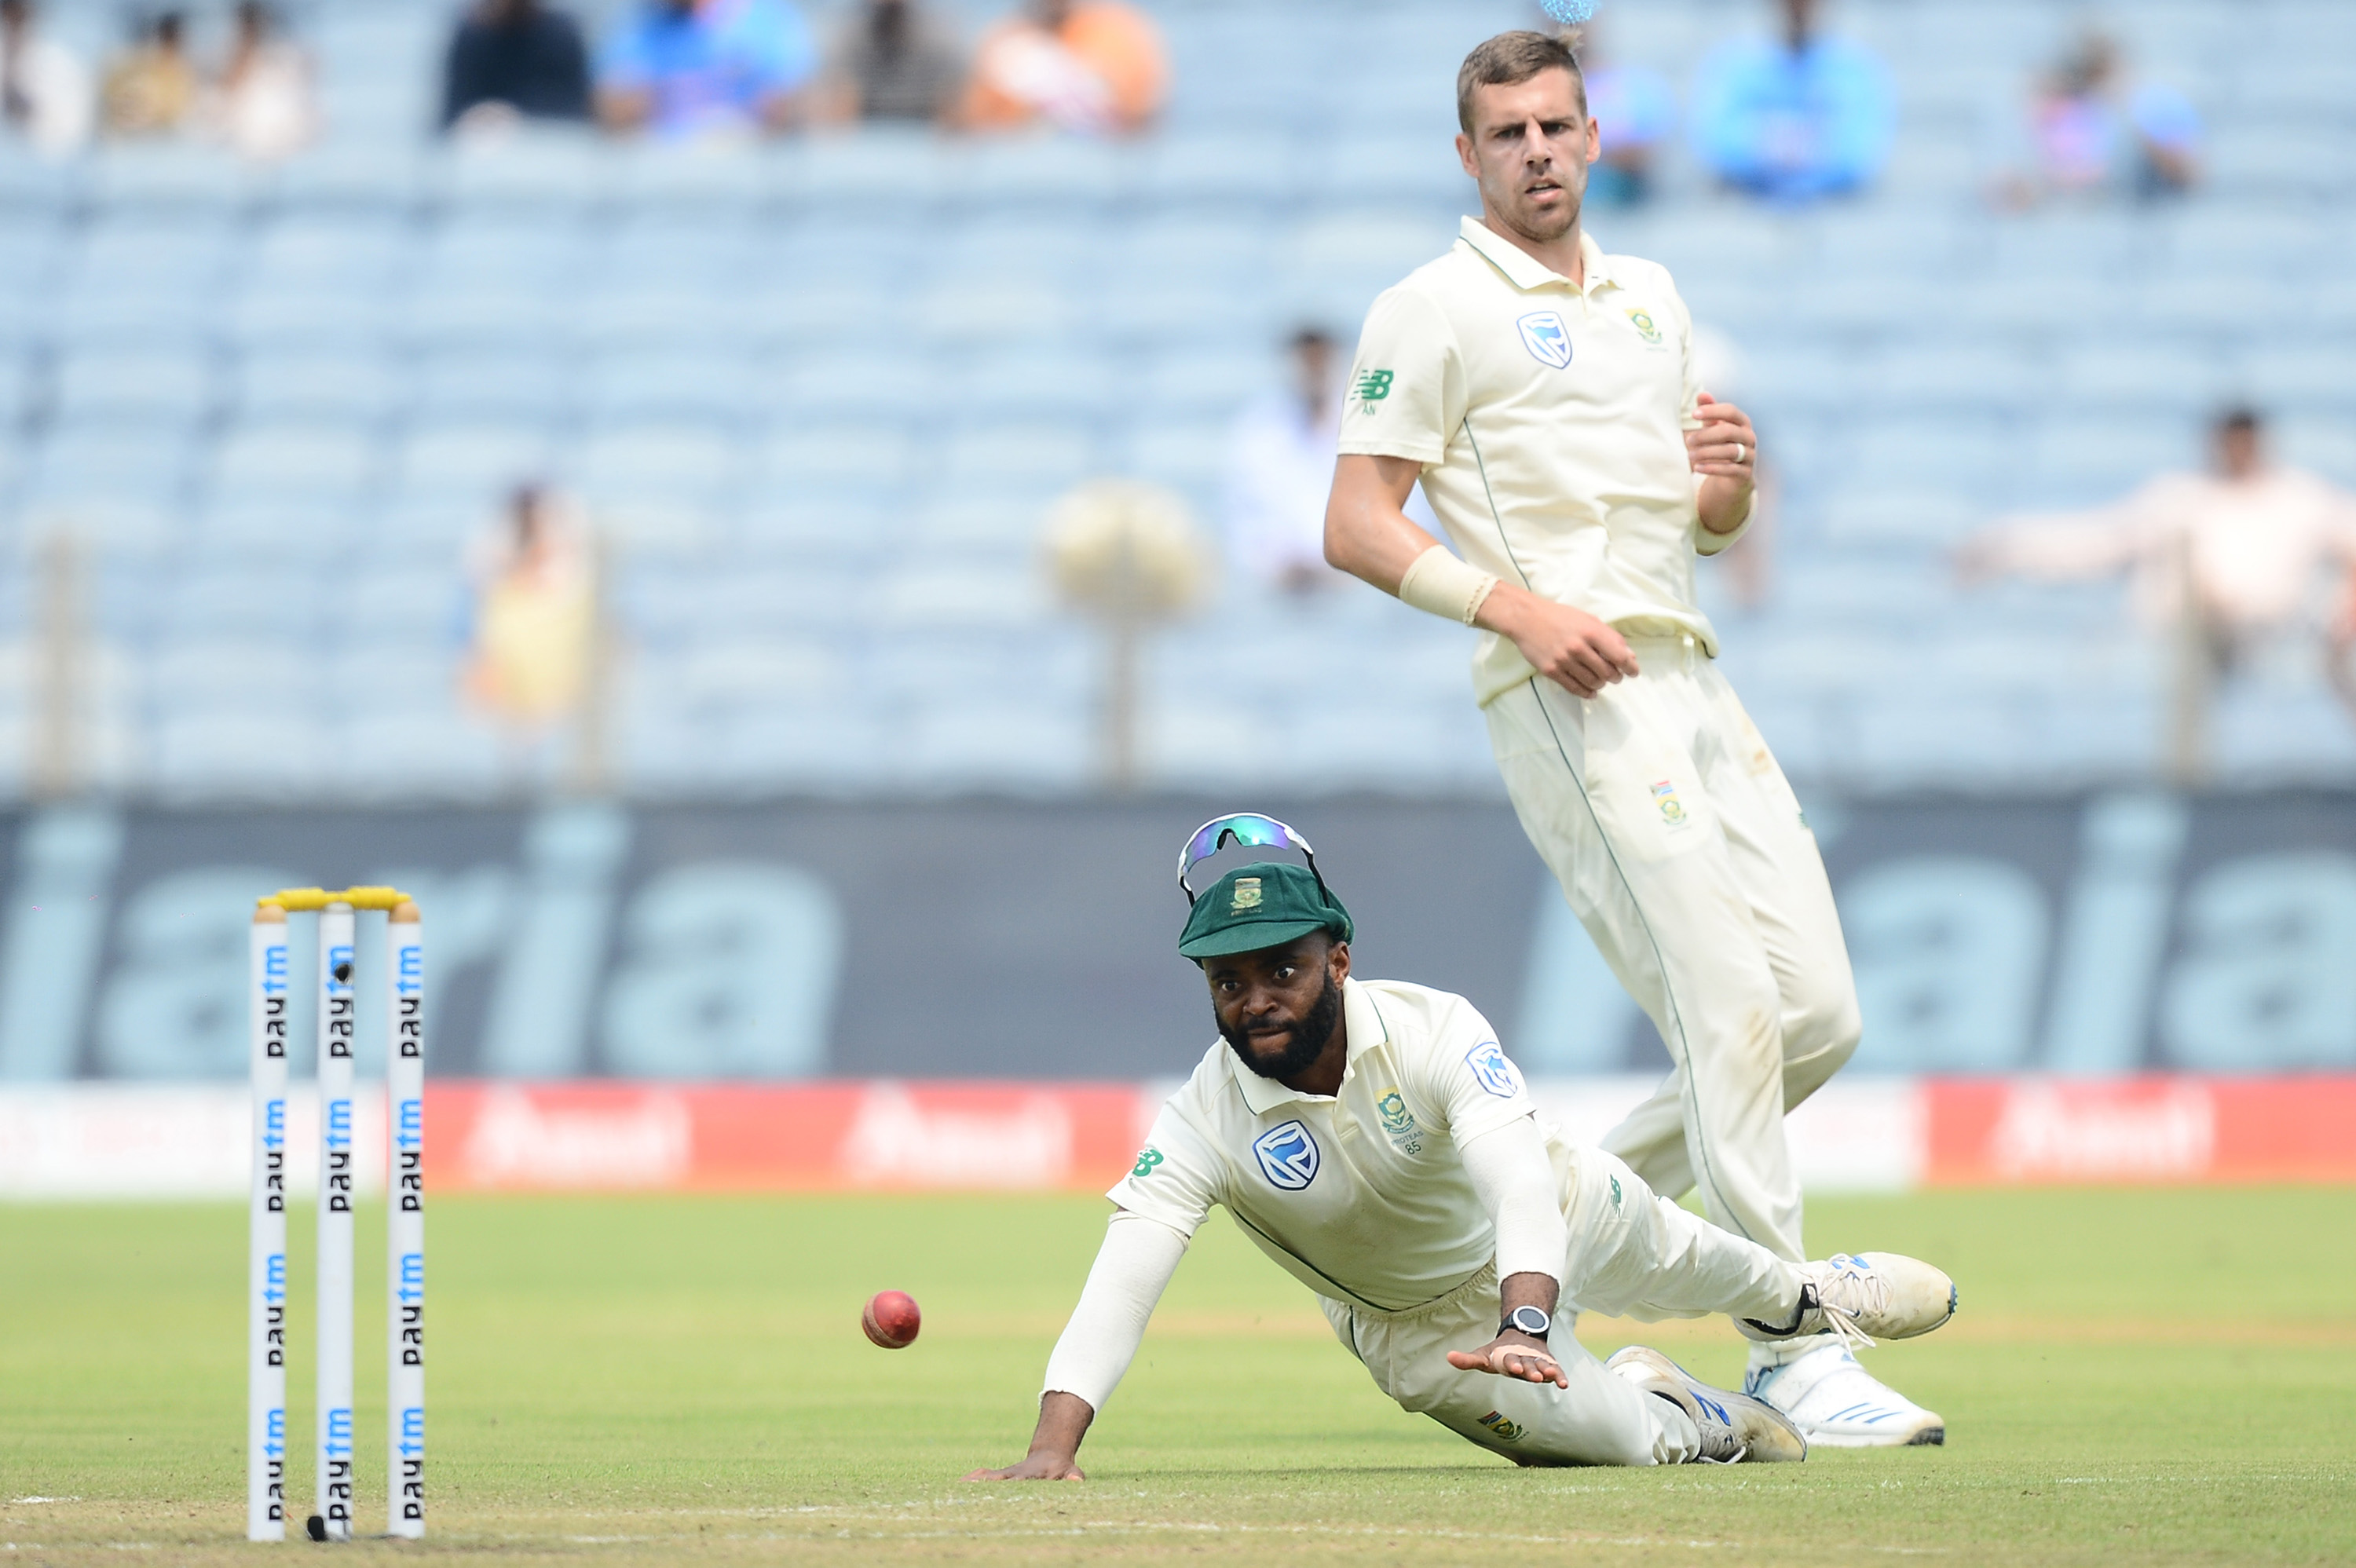 11 October 2019: Temba Bavuma fielding on day two of the Proteas' second Test match against India at the Maharashtra Cricket Association Stadium in Pune, India. (Photograph by Isuru Sameera Peris/Gallo Images)